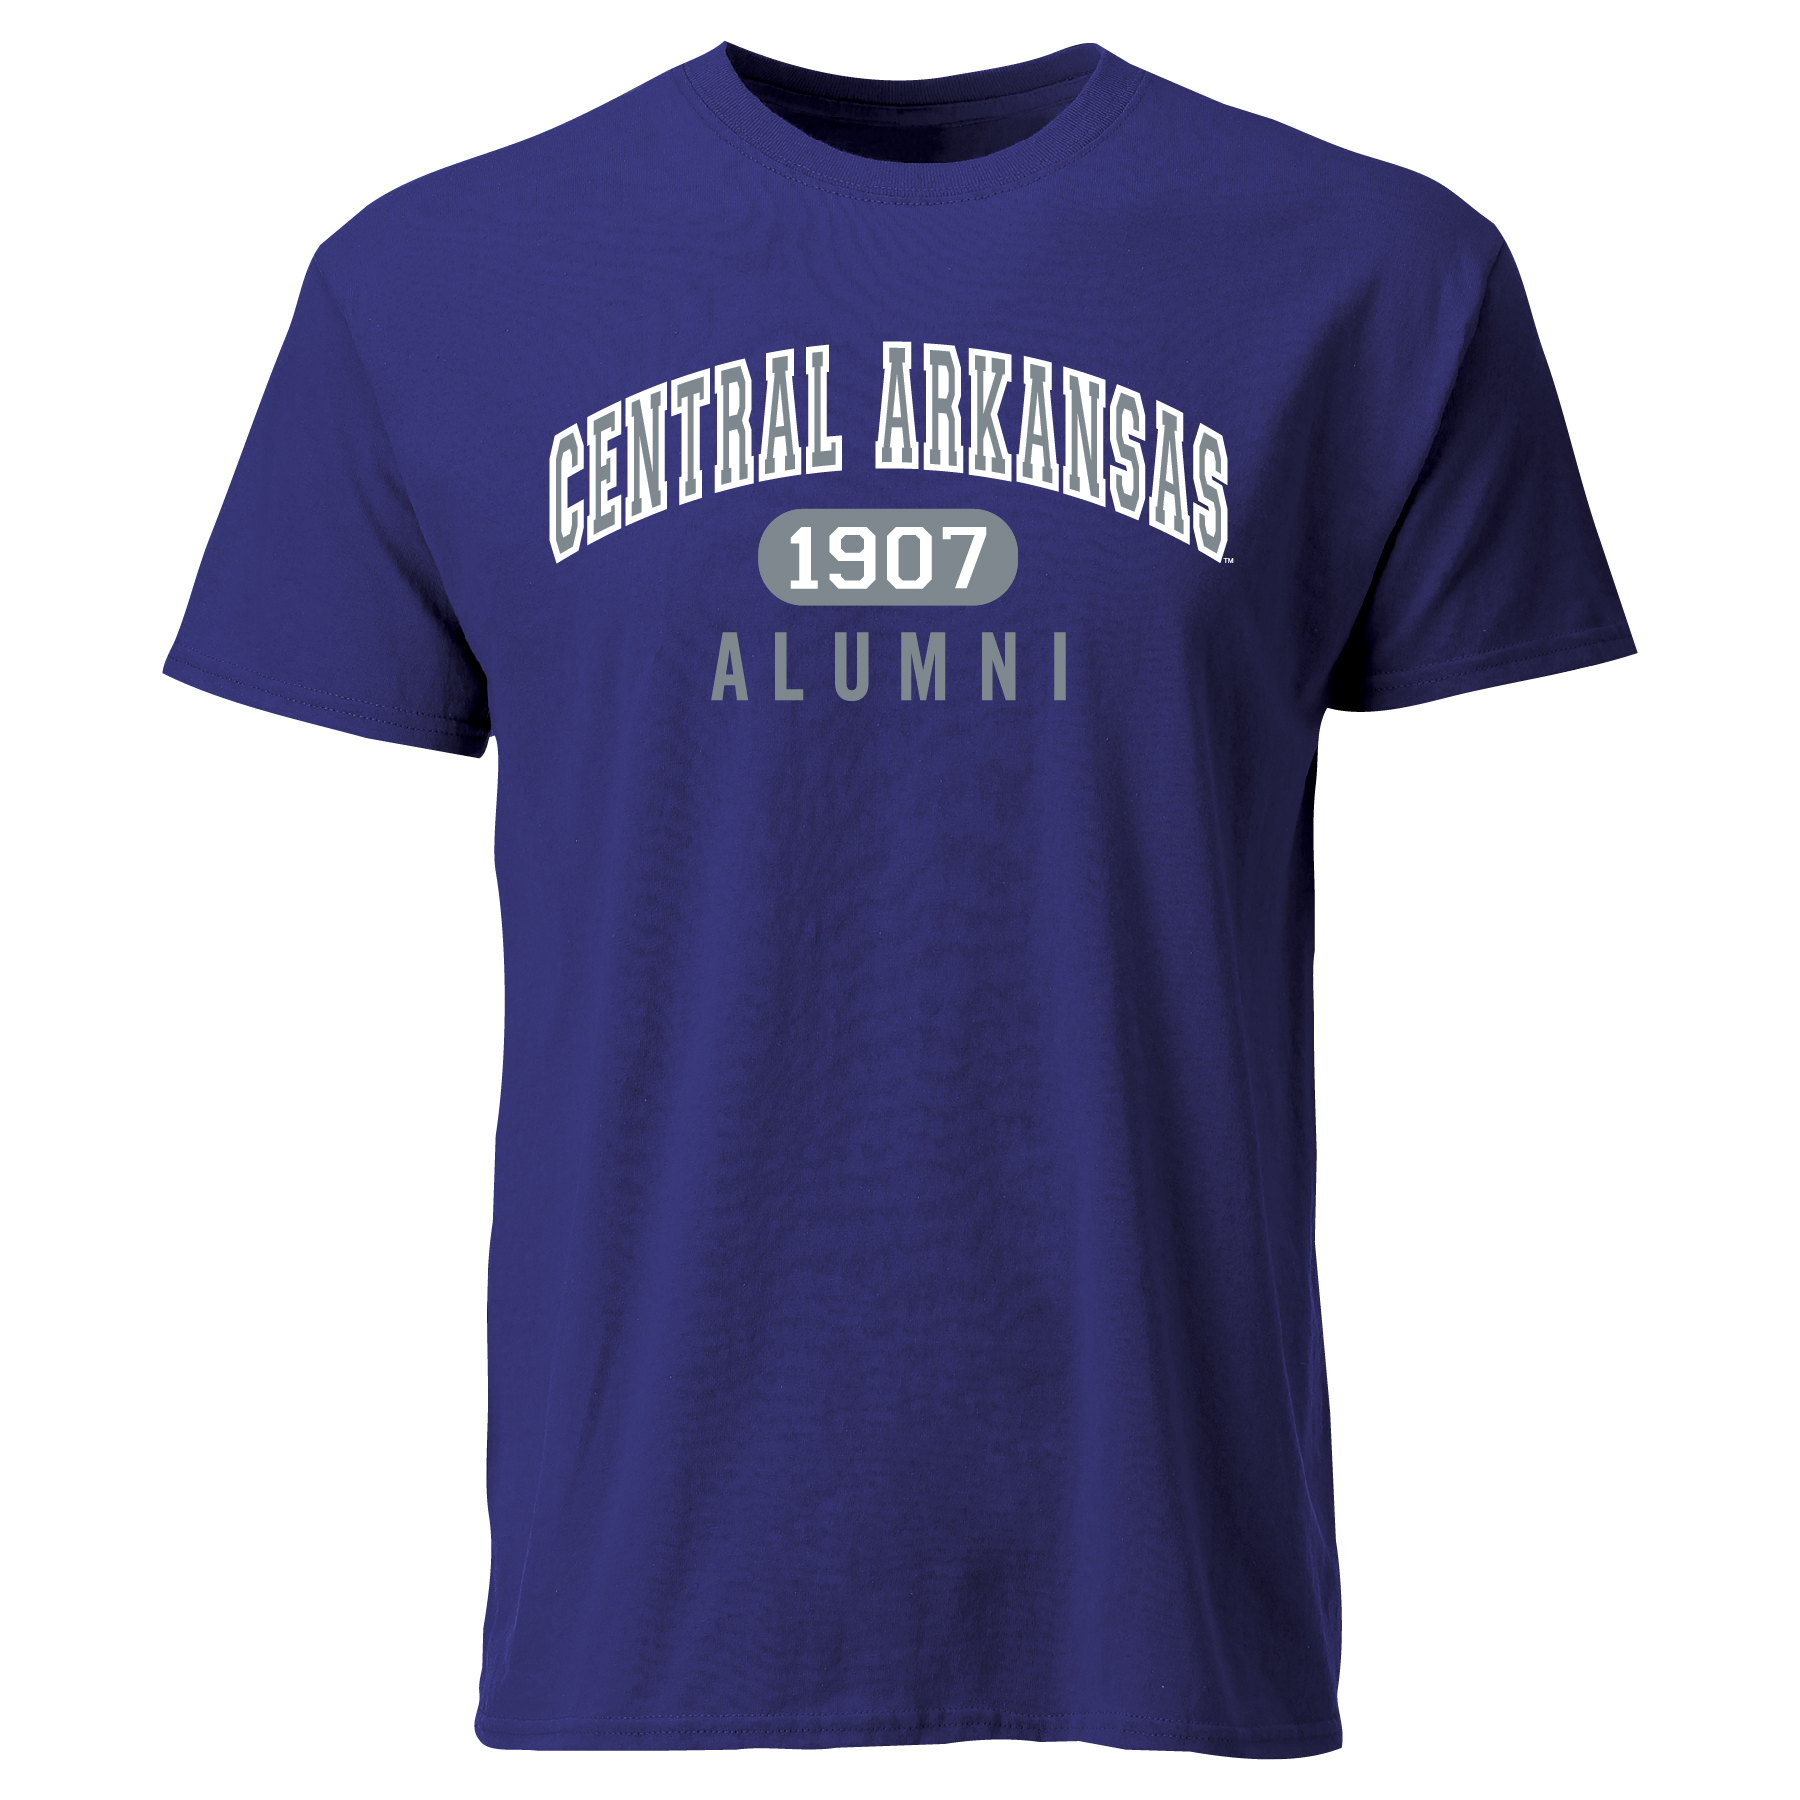 Central Arkansas Alumni SS Tee